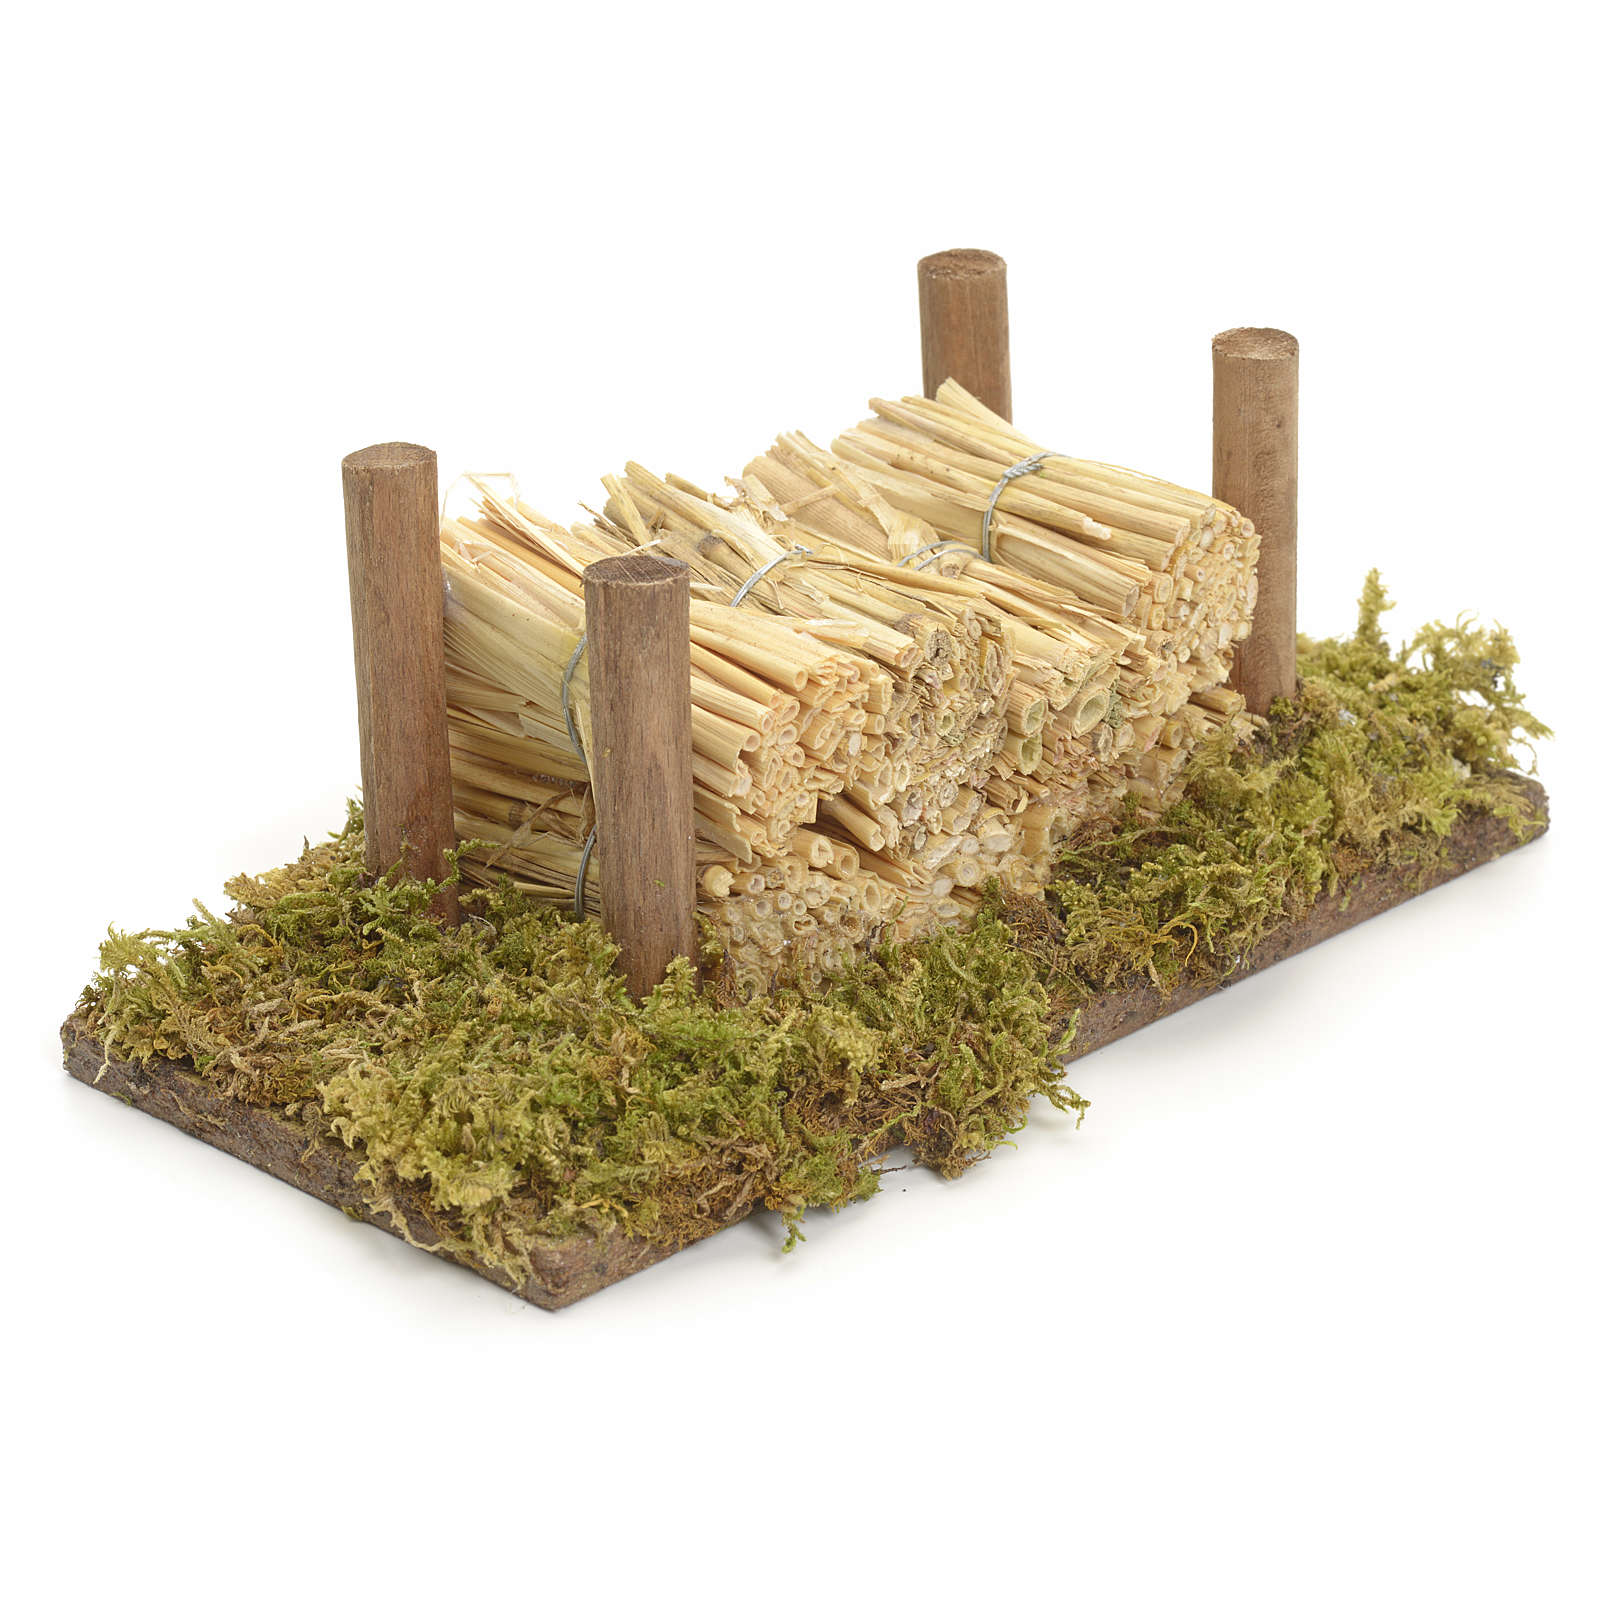 Nativity accessory, wood stack on moss with straw 4